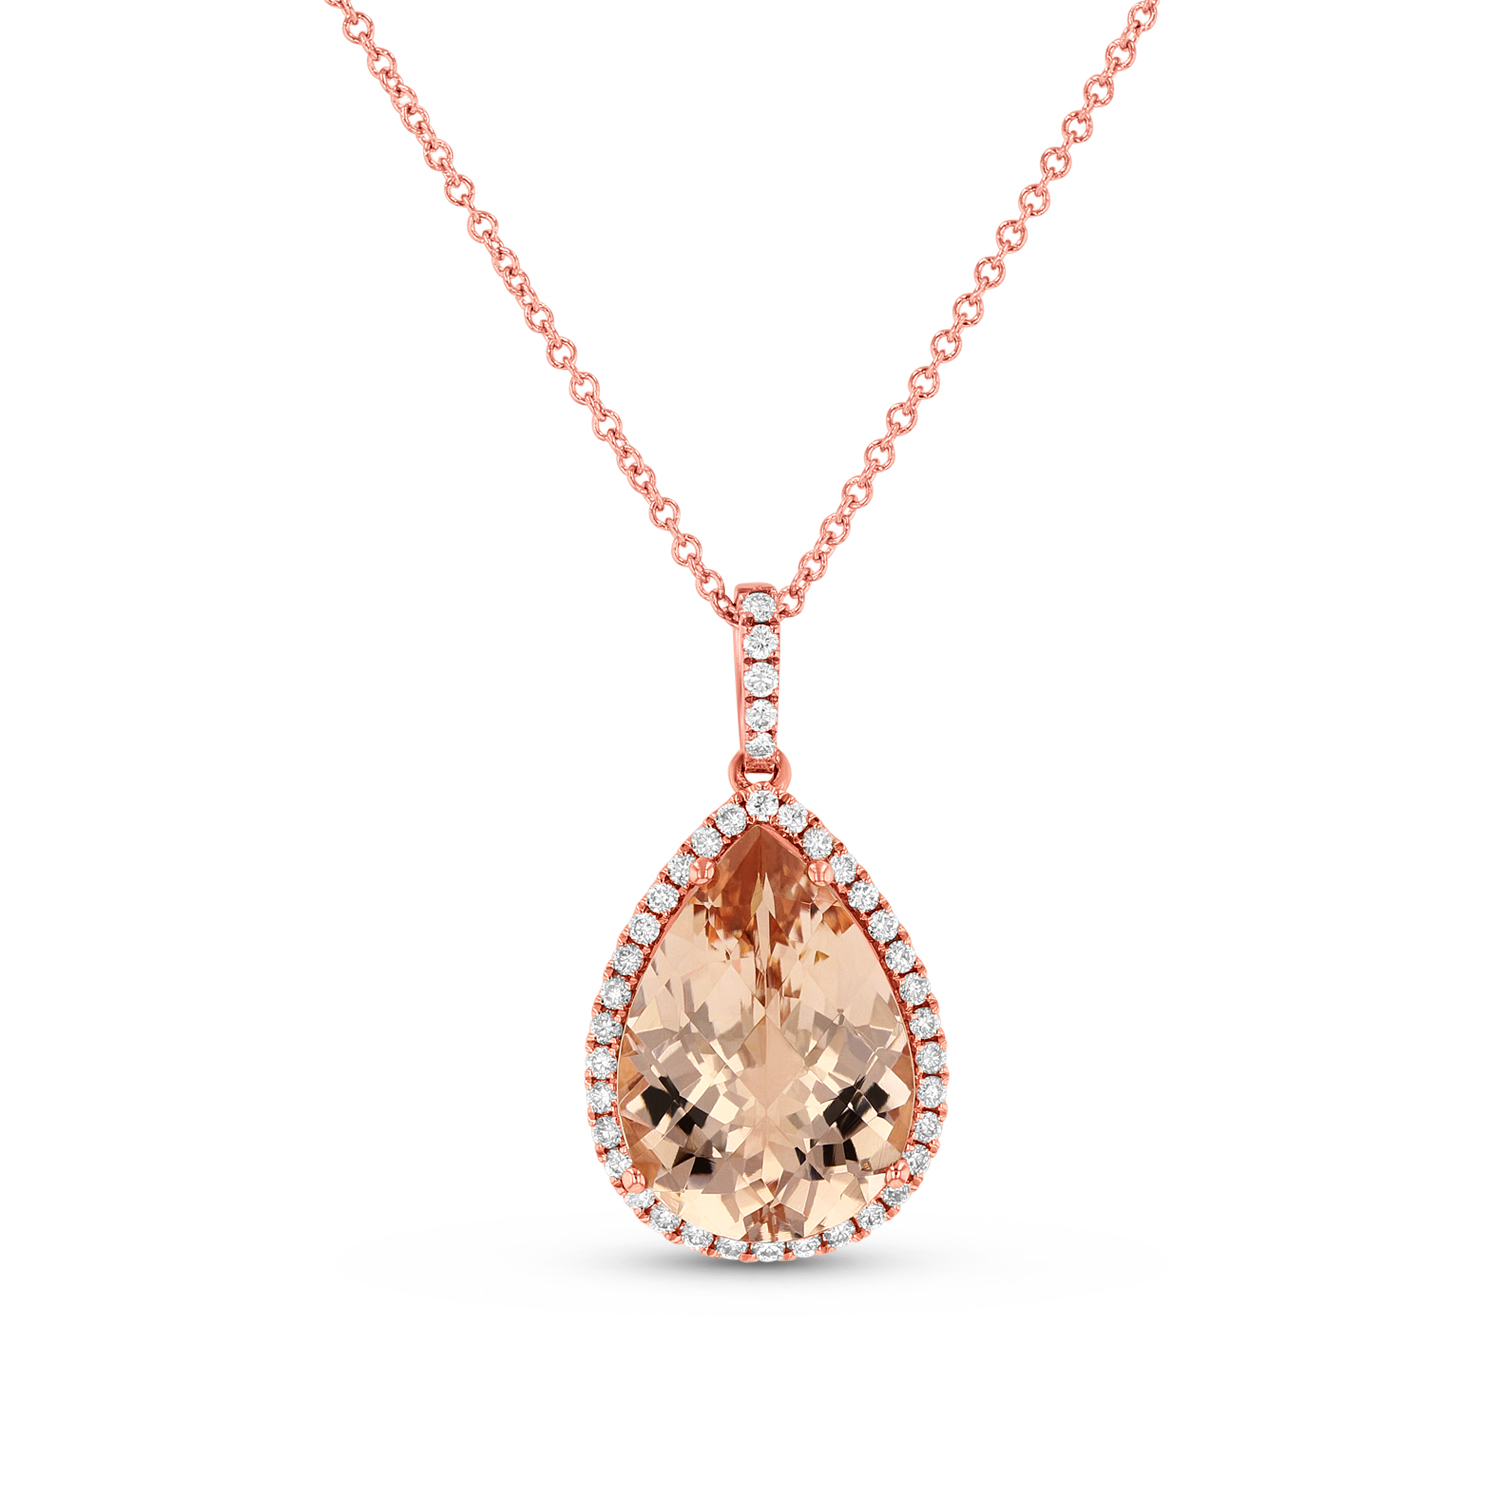 View Diamond and Morganite Pendant in 14k Rose Gold